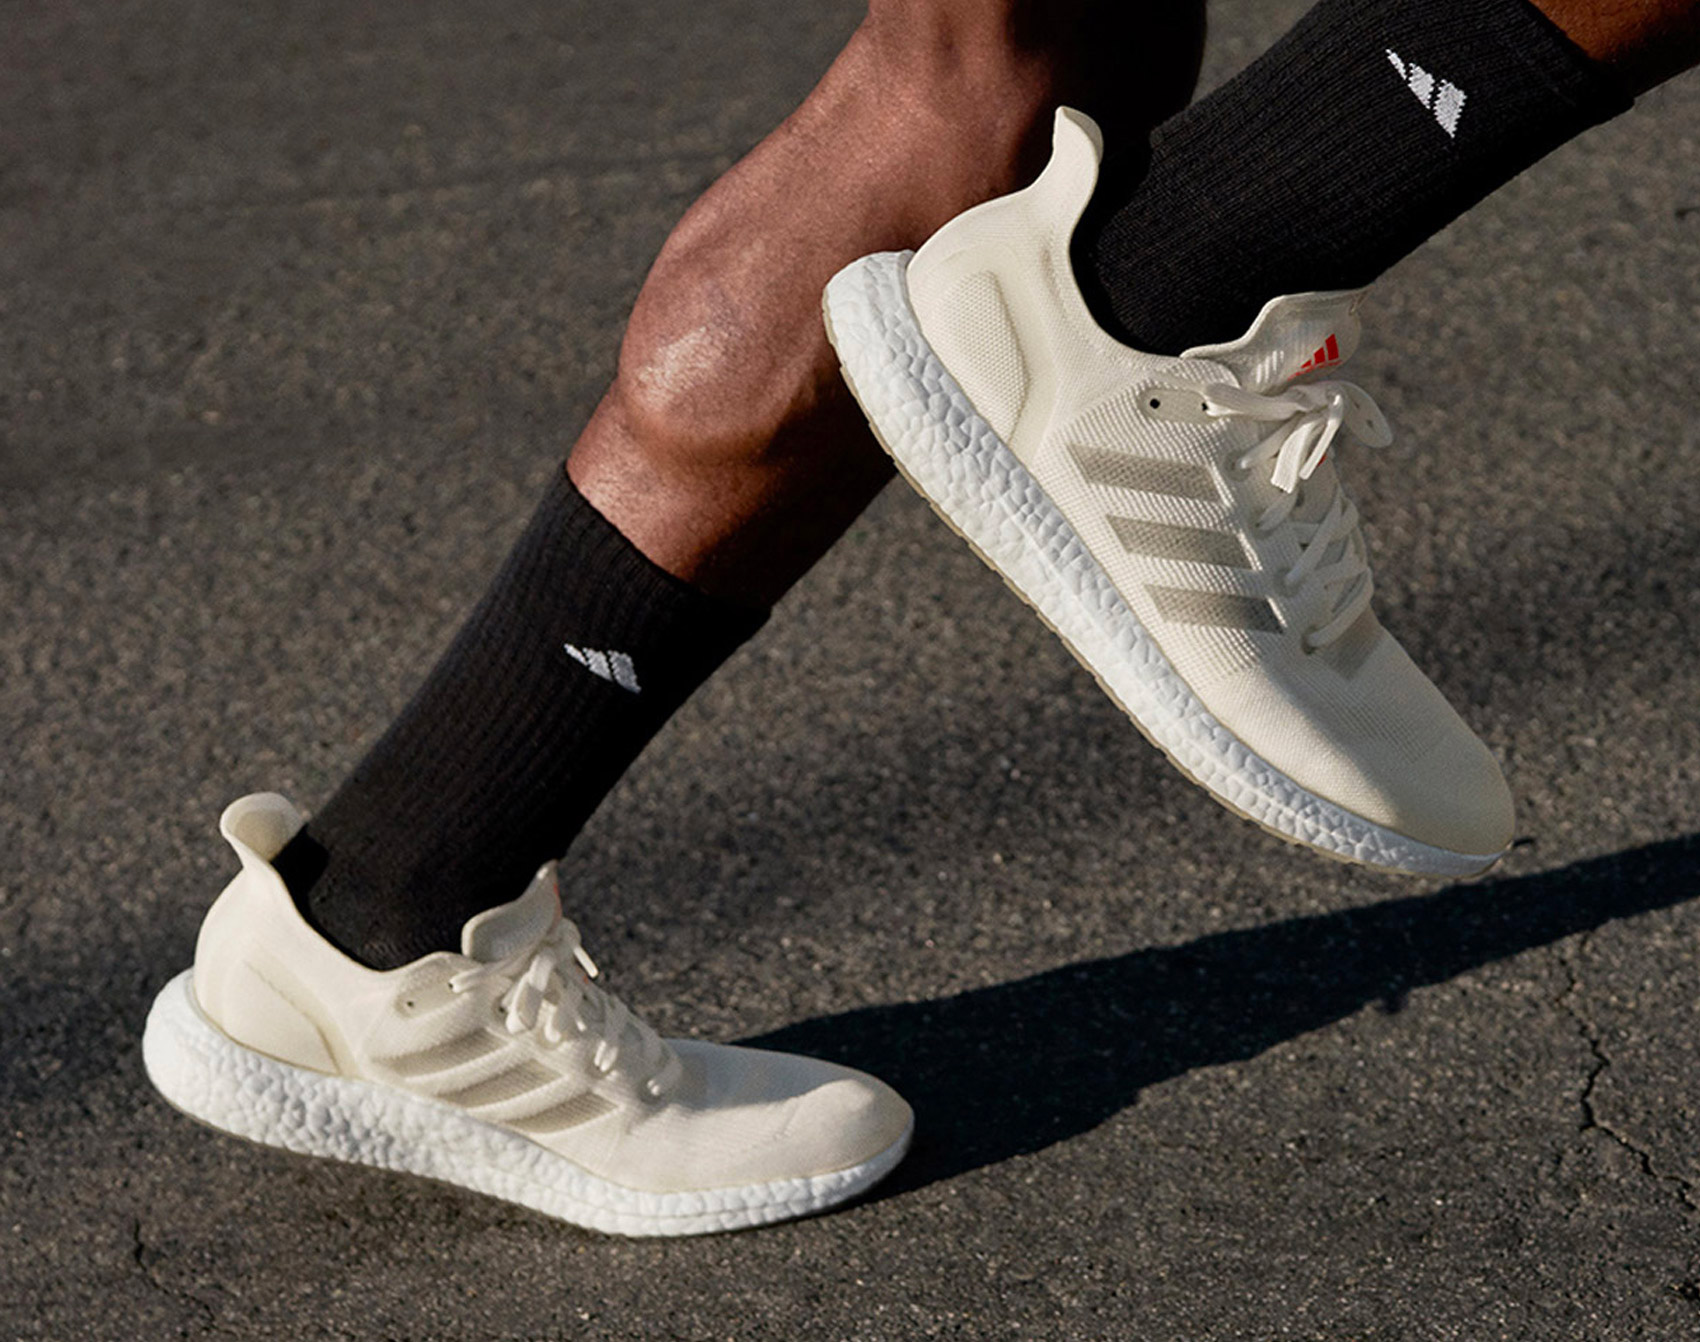 b087cc04a6b21 Adidas Introduces 100% Recyclable Running Shoe